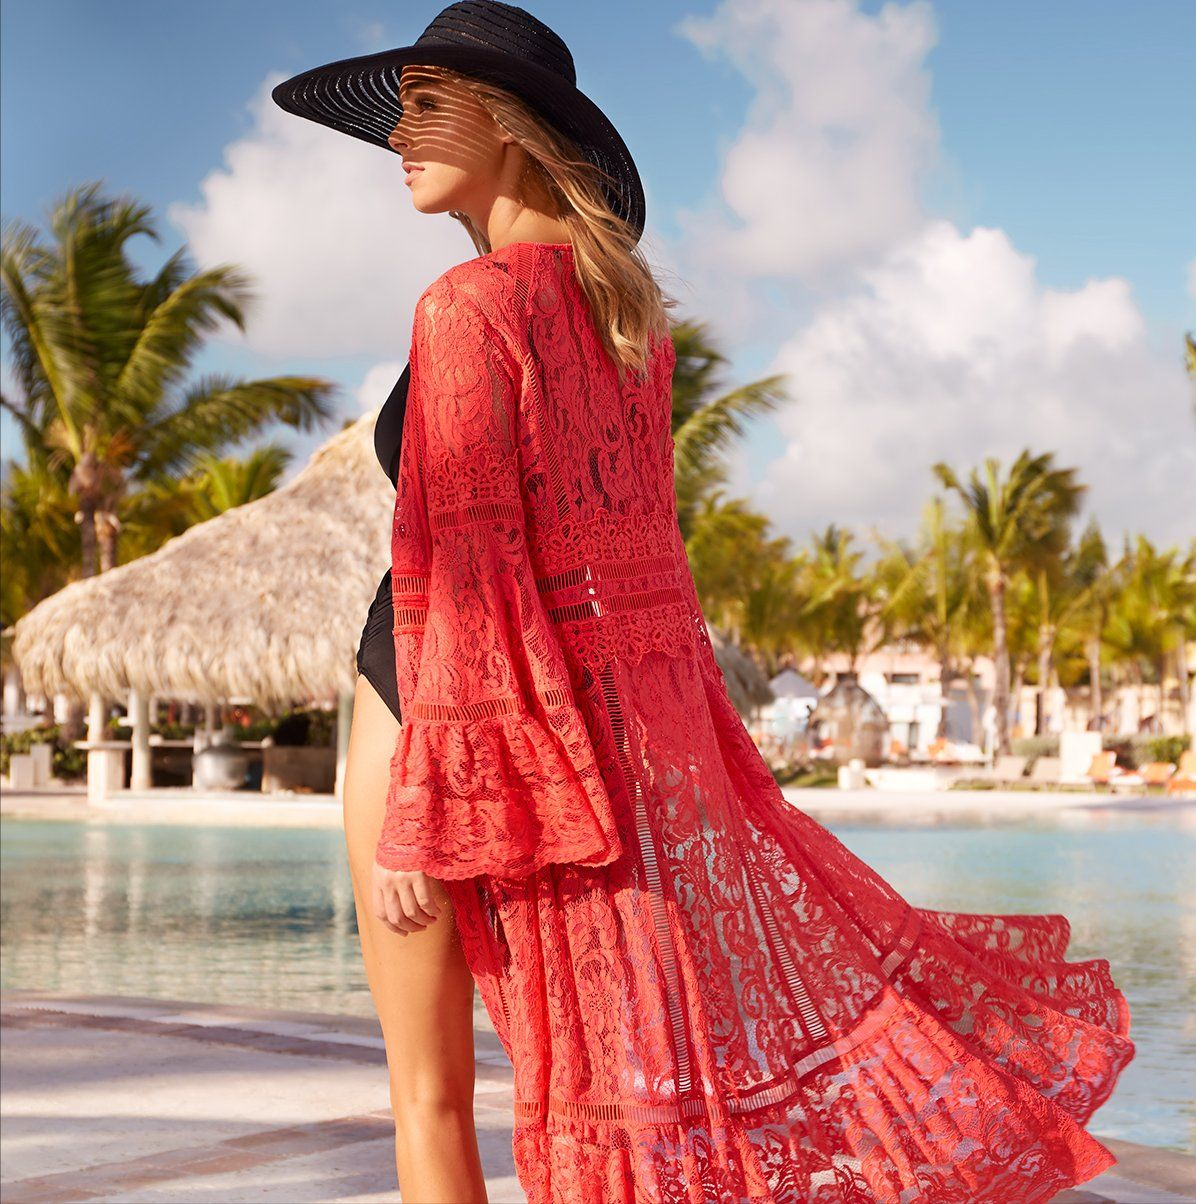 Shop resort wear